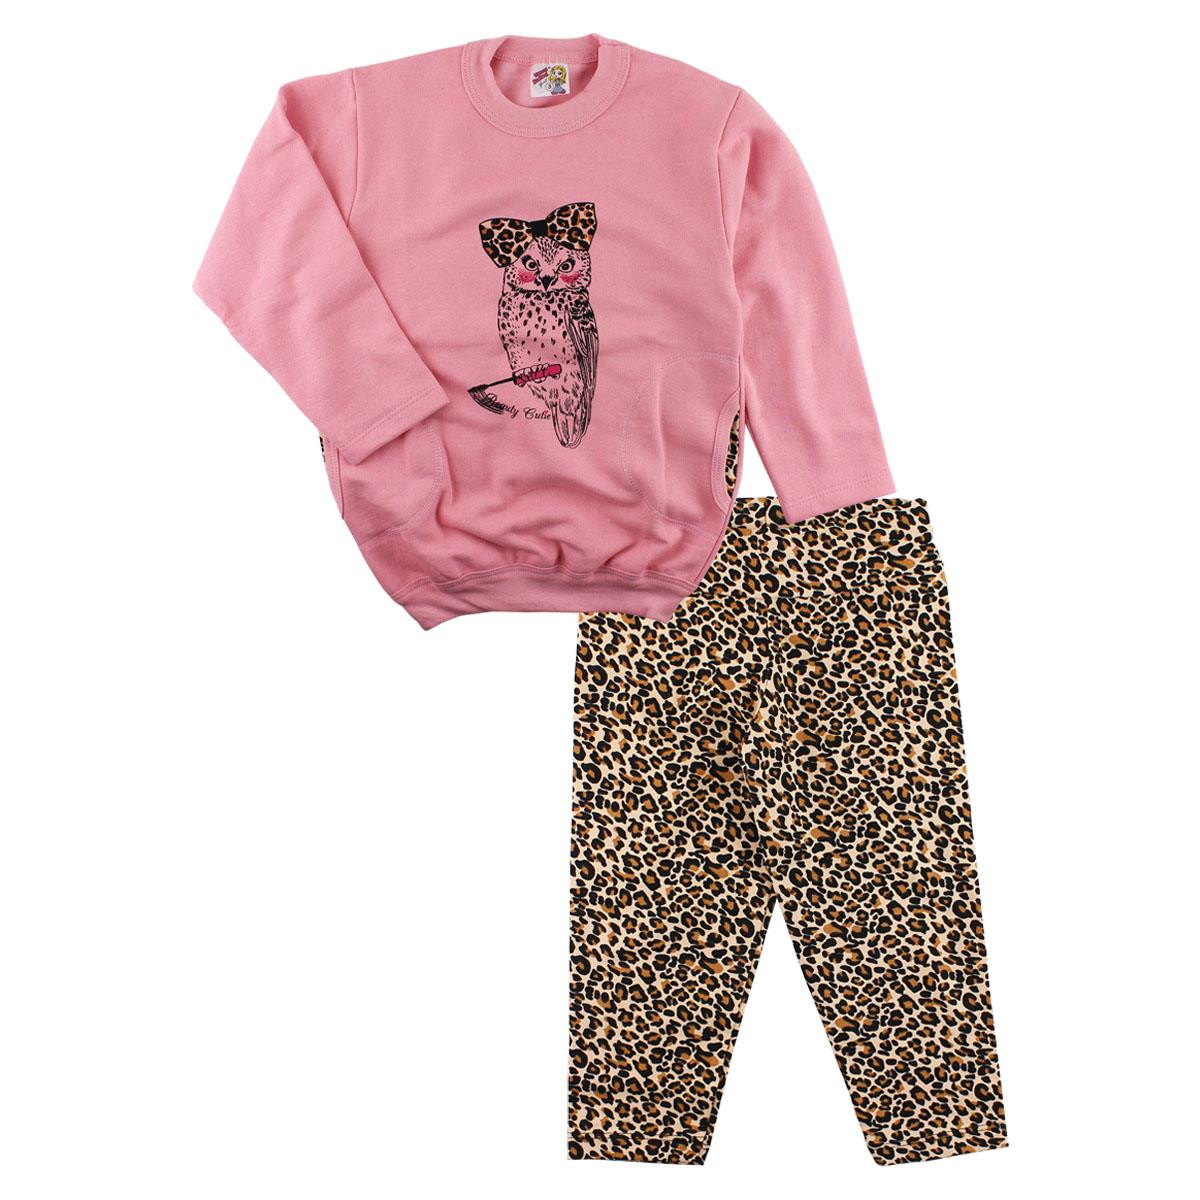 CONJUNTO DE MOLETOM ESTAMPADO ANIMAL PAINT VISUAL RADICAL